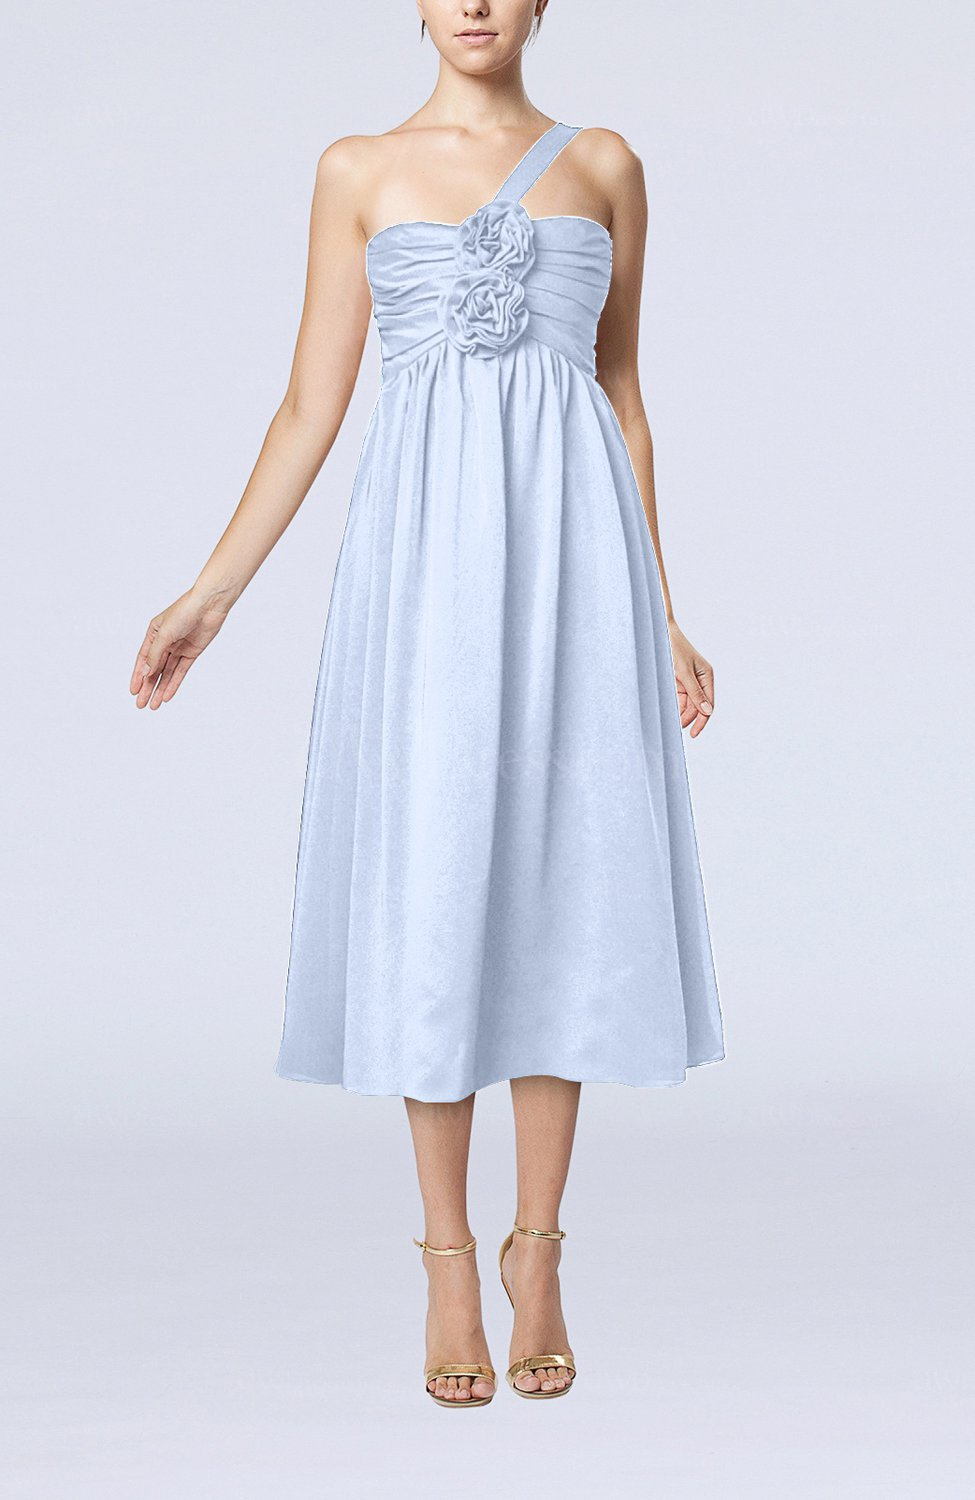 Lavender Casual One Shoulder Sleeveless Chiffon Pleated Wedding Guest Dresses